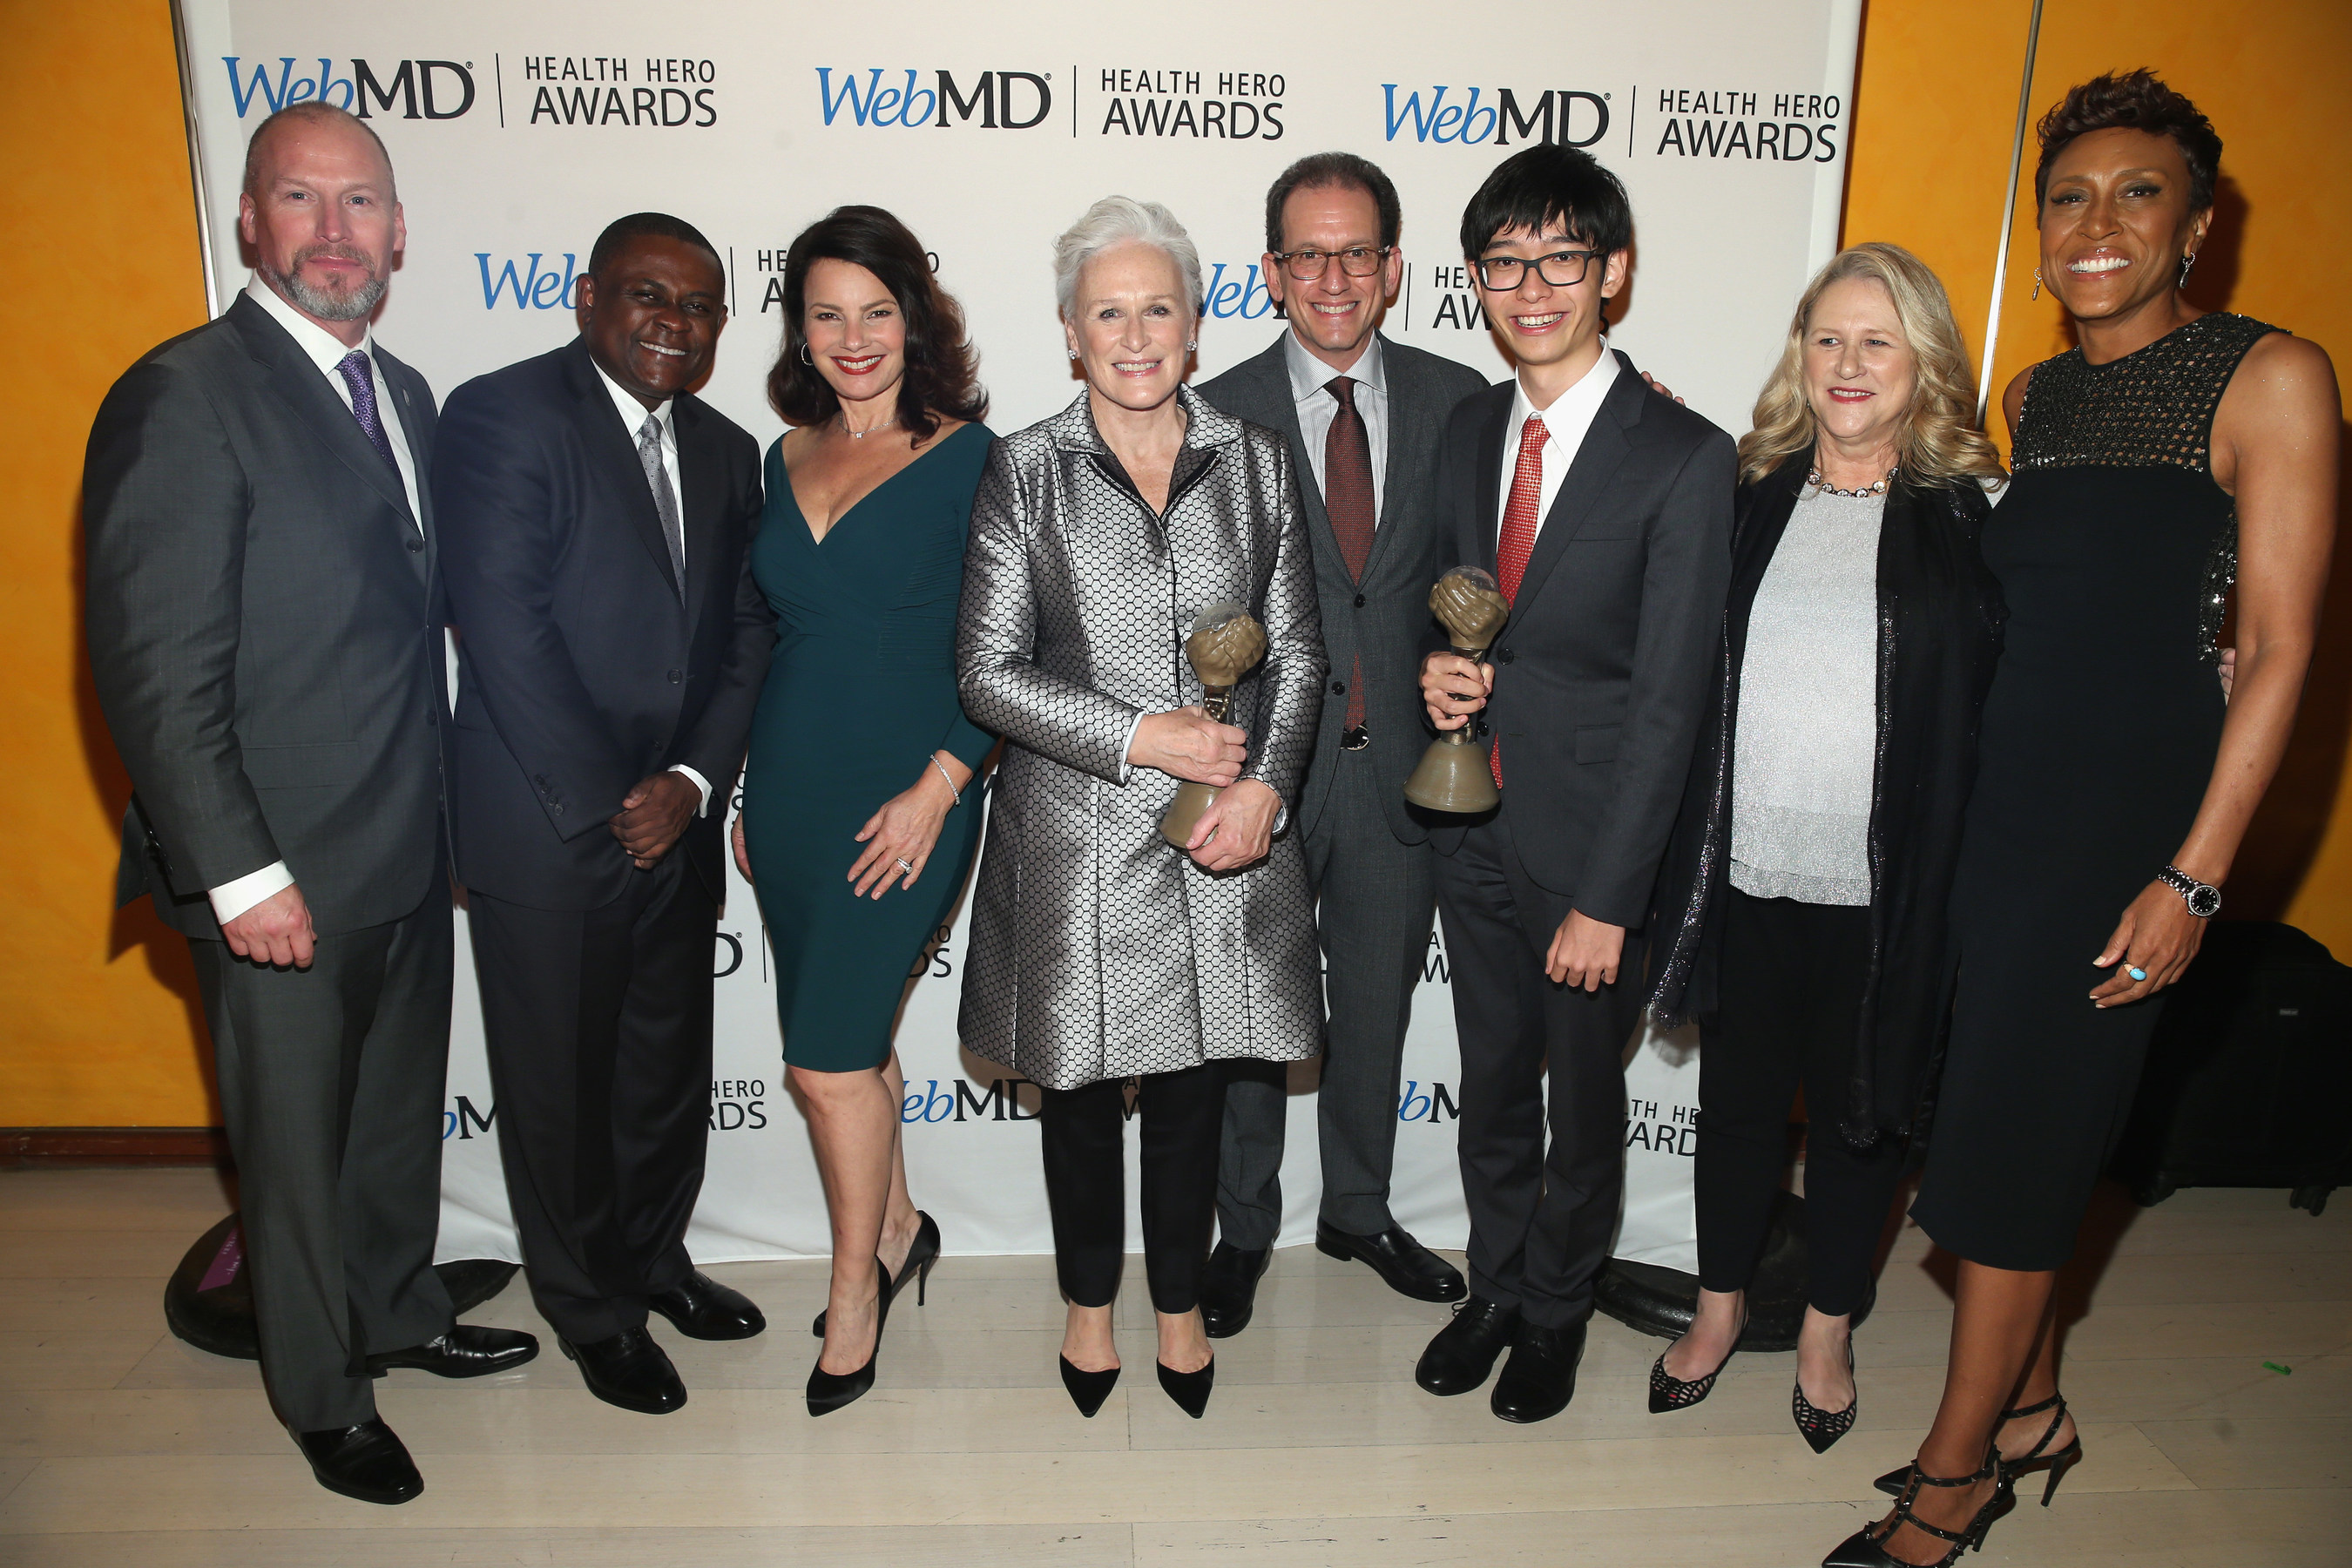 Robin Roberts, Seth Rogen, Amos Lee, Fran Drescher and Others Join WebMD in Celebrating 2015 Health Heroes